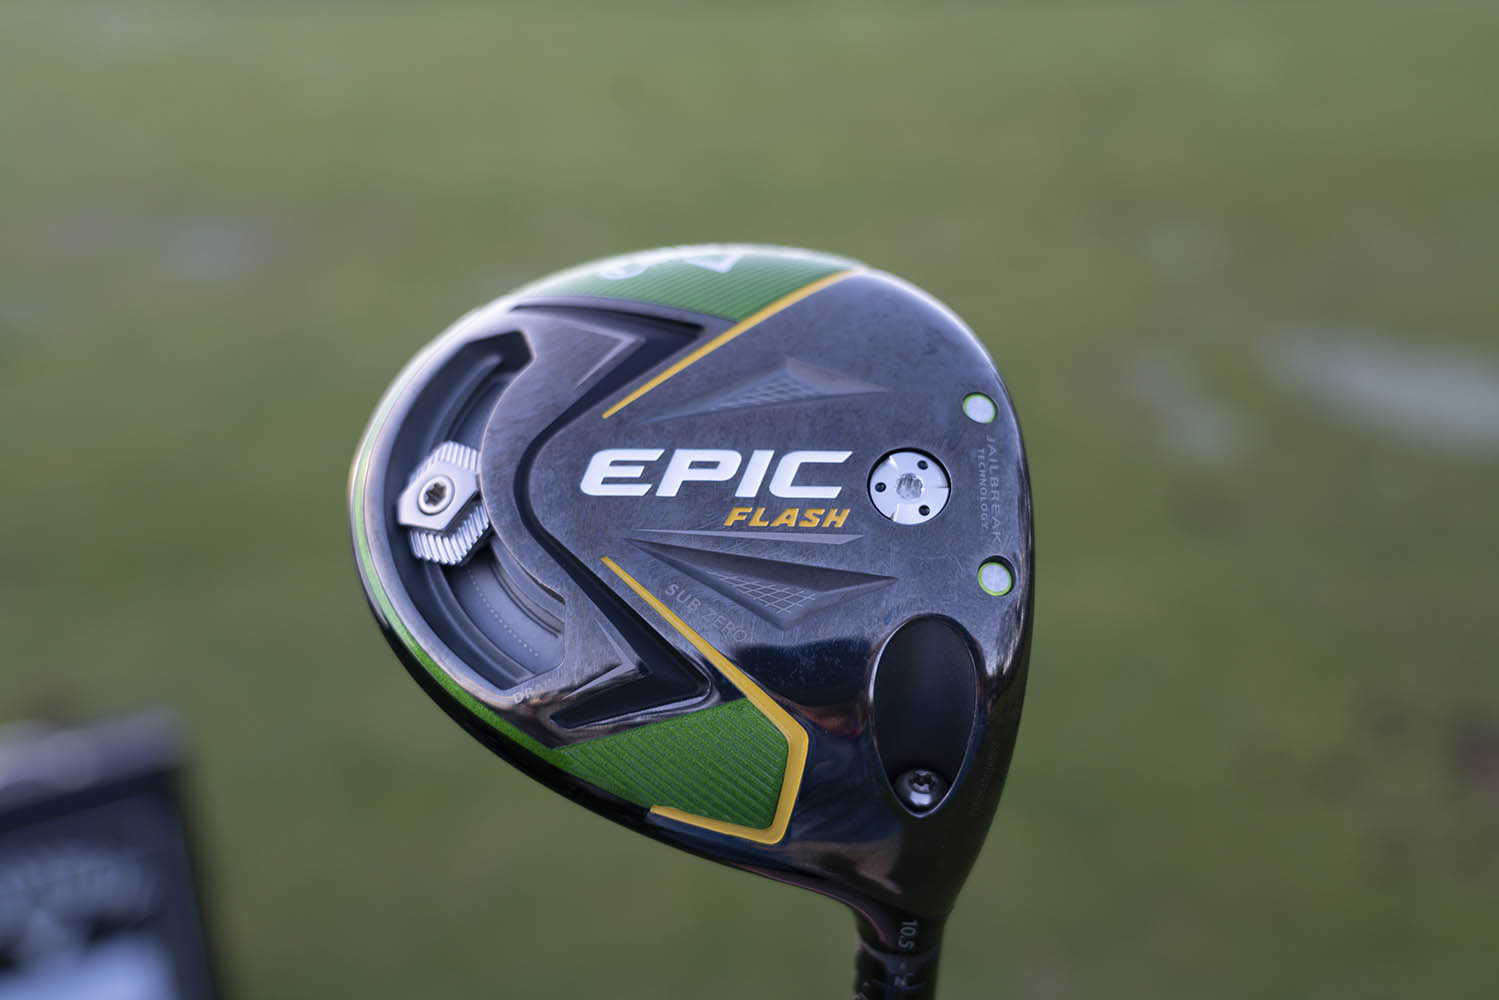 REVIEW: Callaway Epic Flash driver & woods - The GOLFTEC